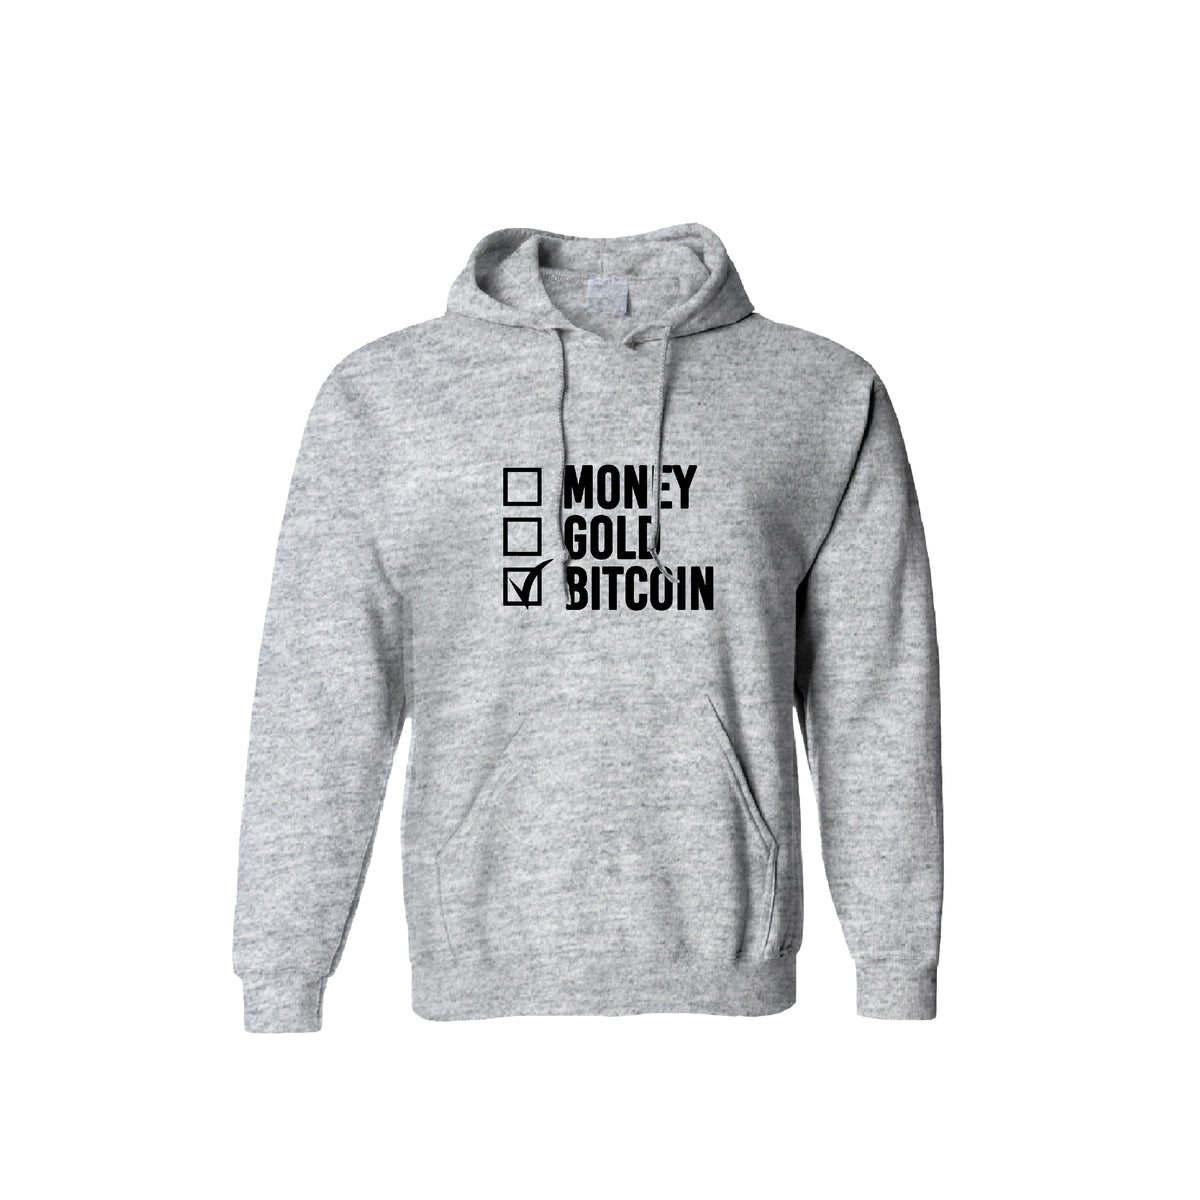 Money Gold Bitcoin Tick Box Unisex Hoodie - Pockets Moda Customise Hoodies and Tshirt